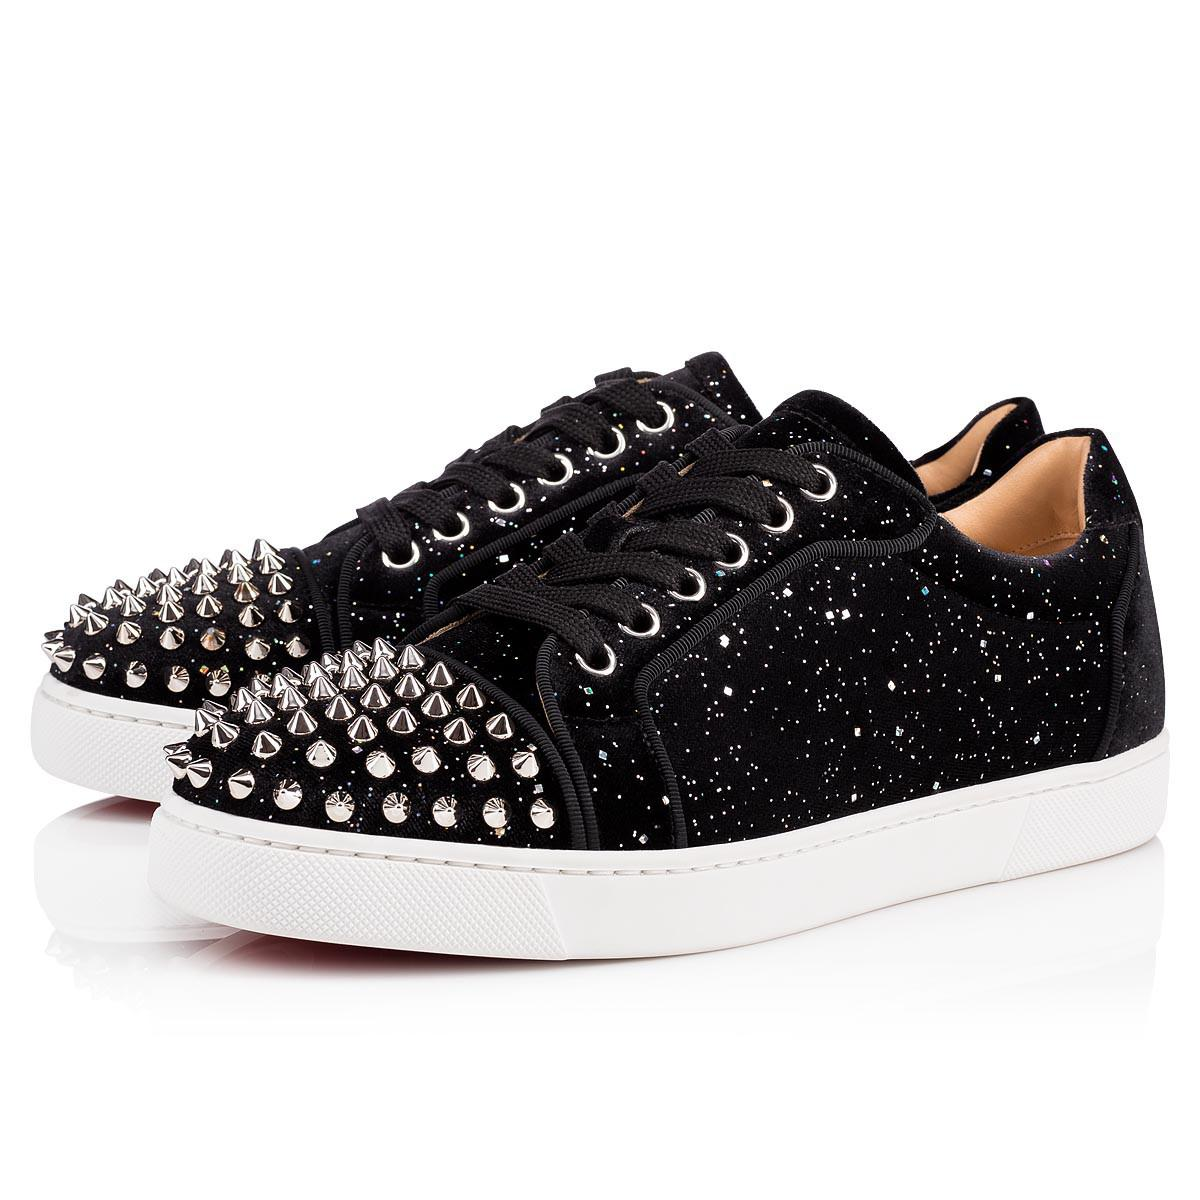 9f3795722bbf Christian Louboutin Viera Spiked Velvet Trainers in Black - Save 24 ...